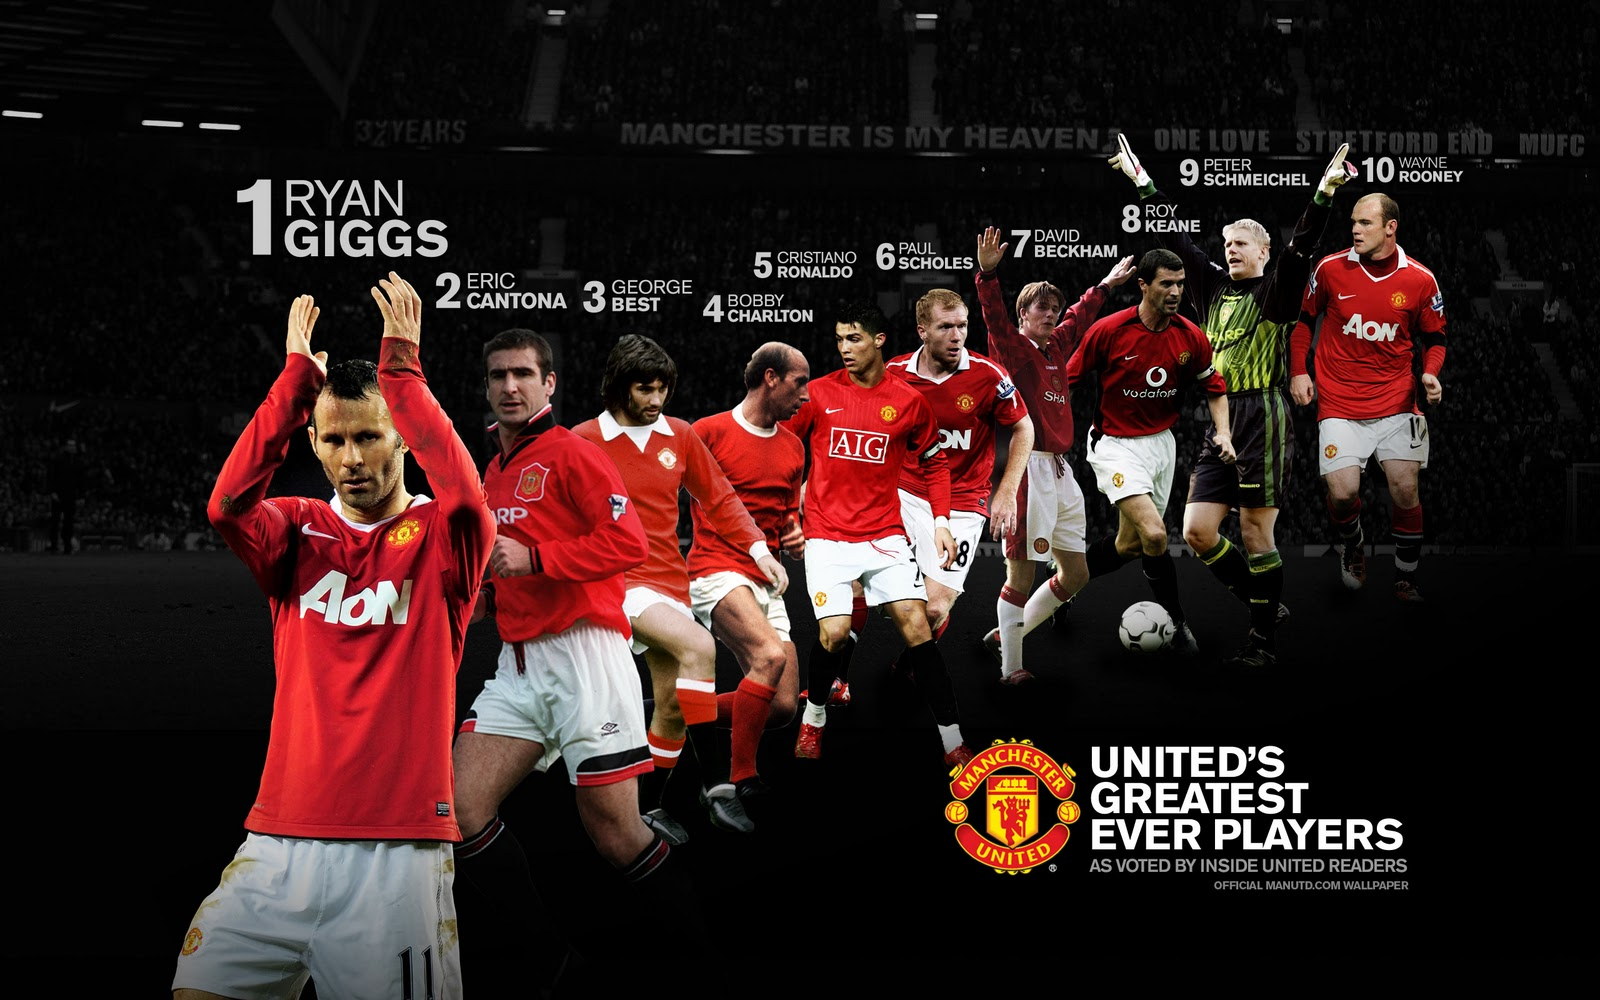 manchester united wallpapers hdimage - photo #14